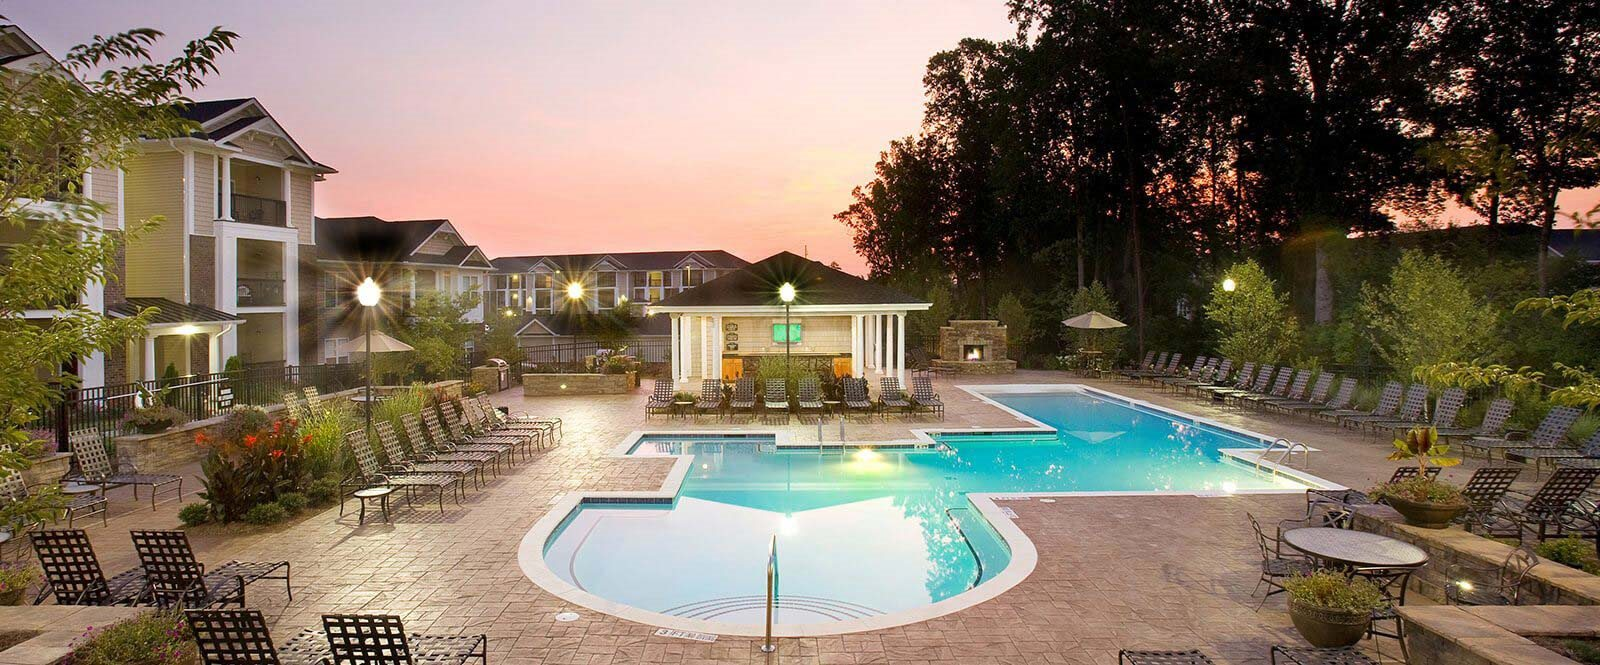 Poolside Sundeck and Grilling Area at Abberly Place at White Oak Crossing by HHHunt, Garner